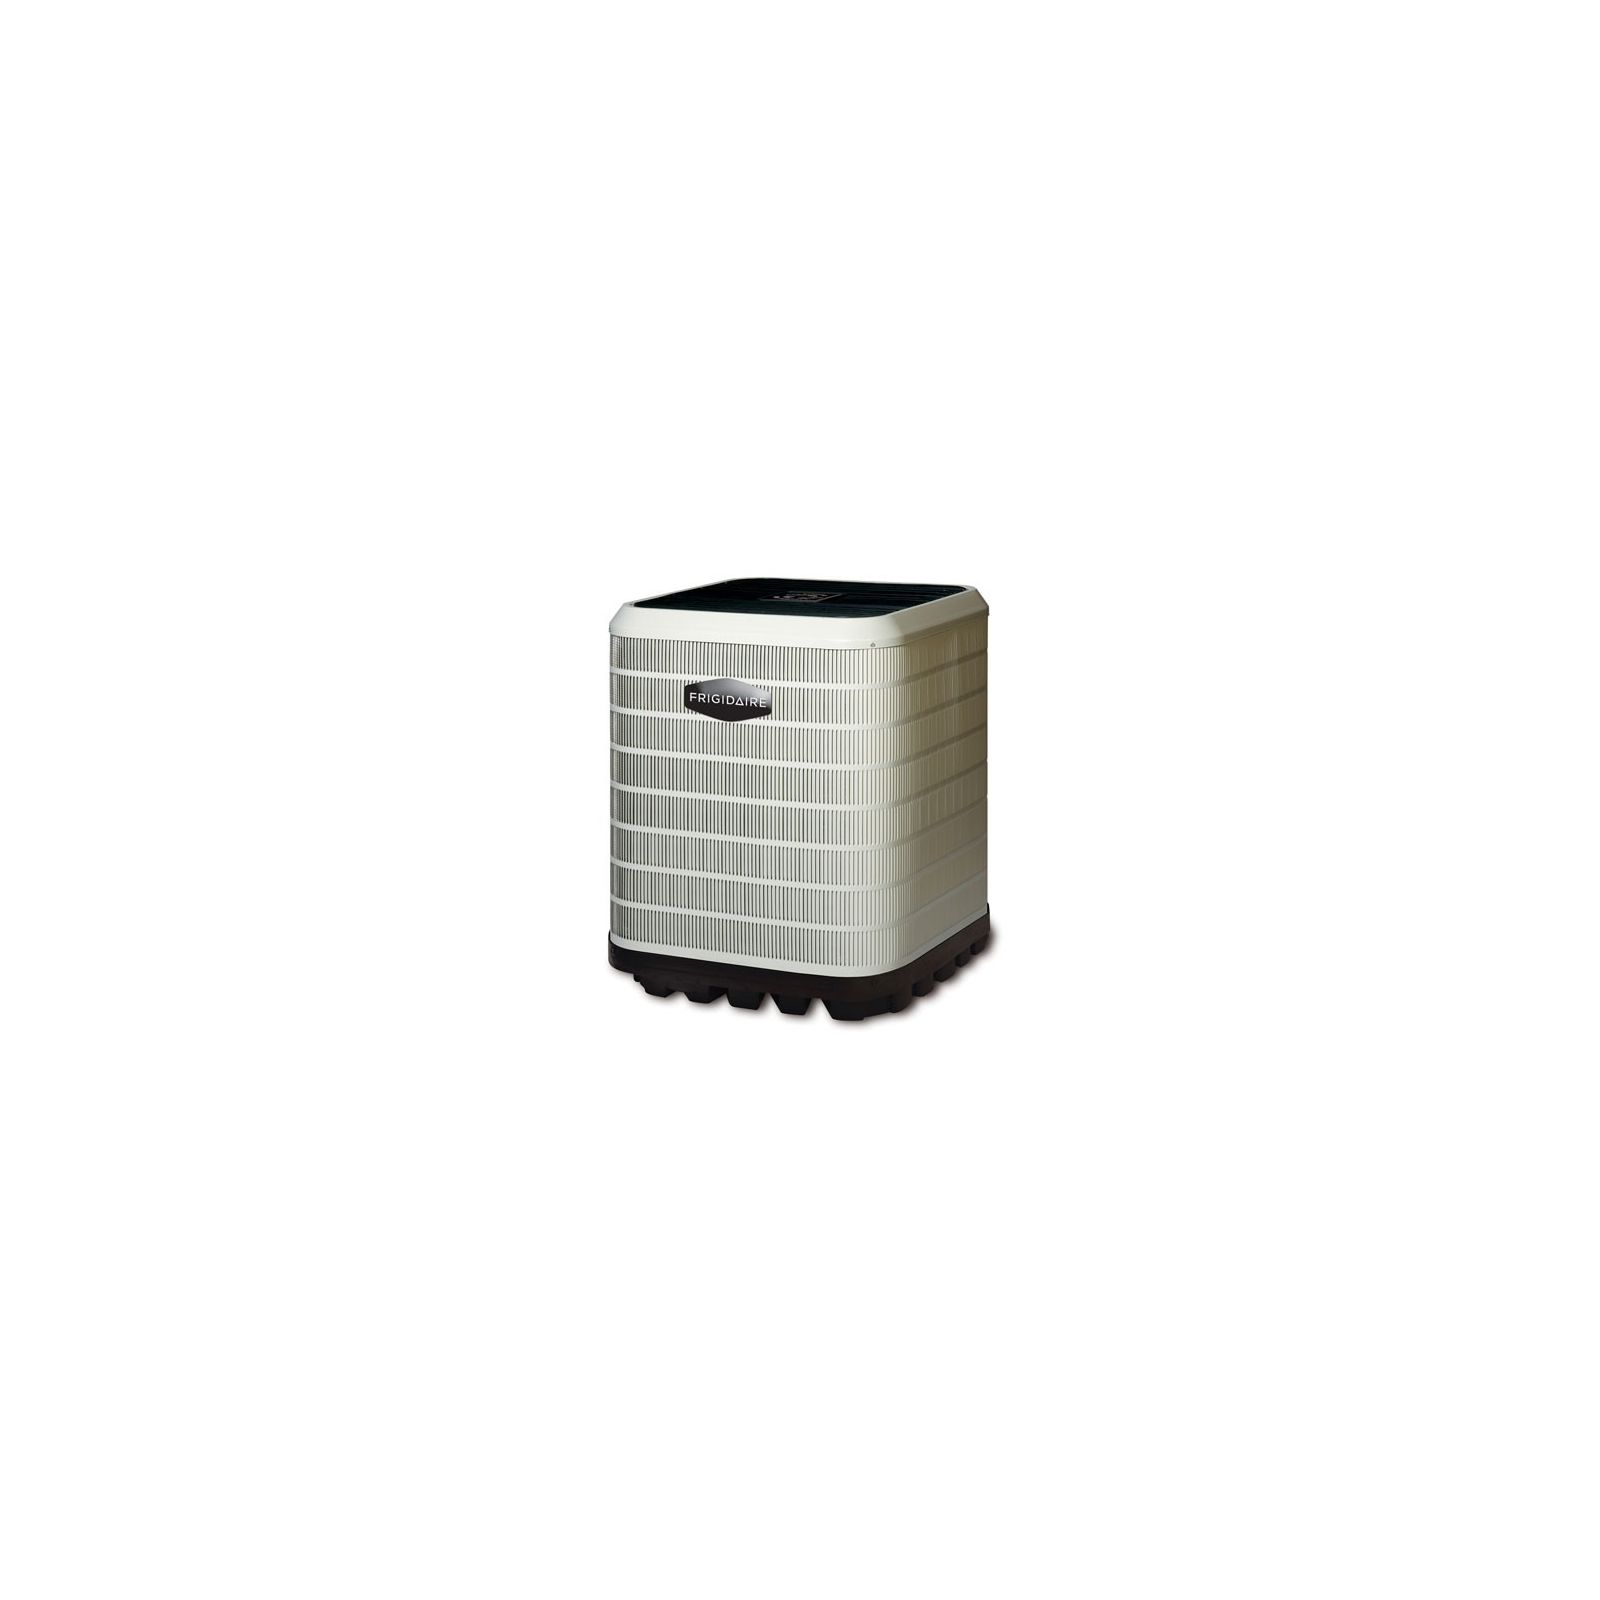 Frigidaire 921983F - FT4BE030KA - 2 1/2 Ton 14 SEER High Efficiency Heat Pump, R410A